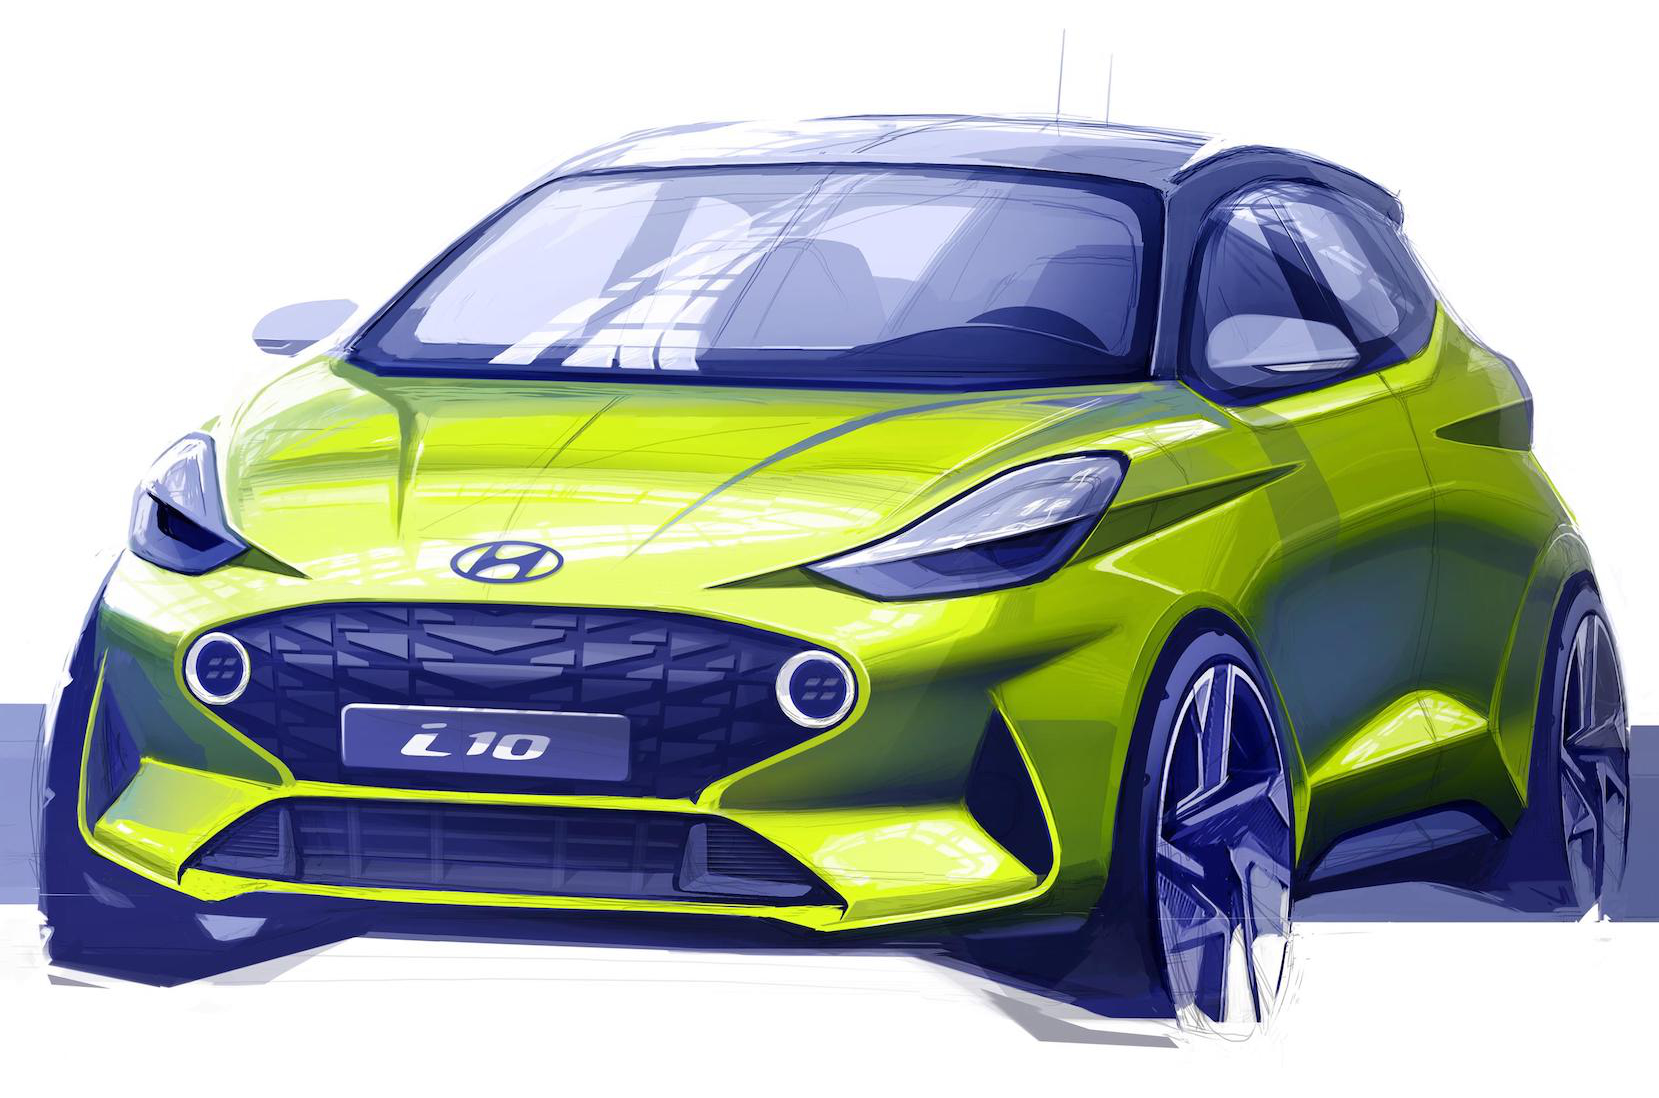 Hyundai Completes Sketching The New i10, This Is It